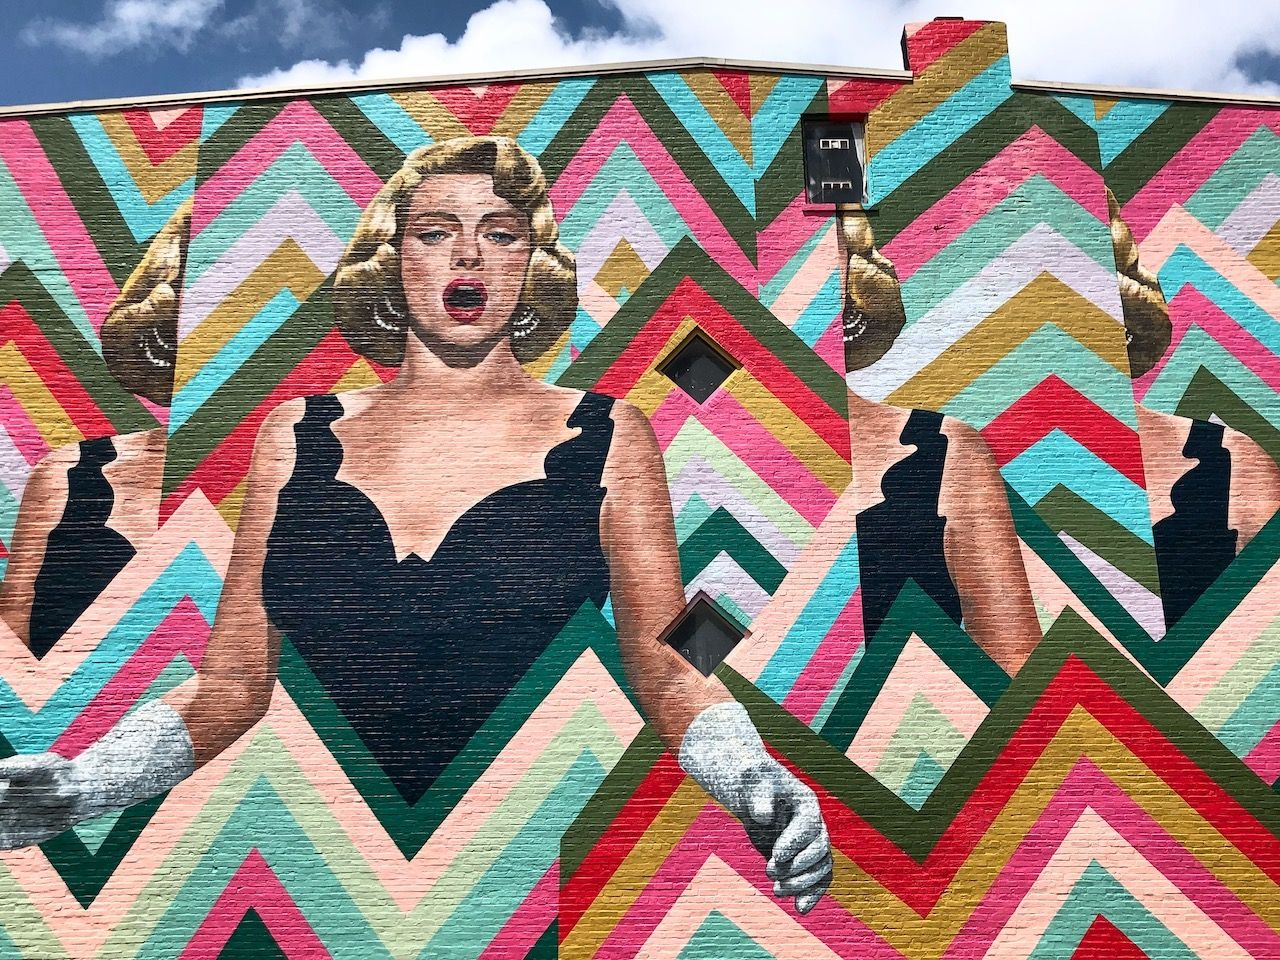 Spray paint masterpieces.. The post 11 American cities with surprising street art scenes appeared first on Matador Network..